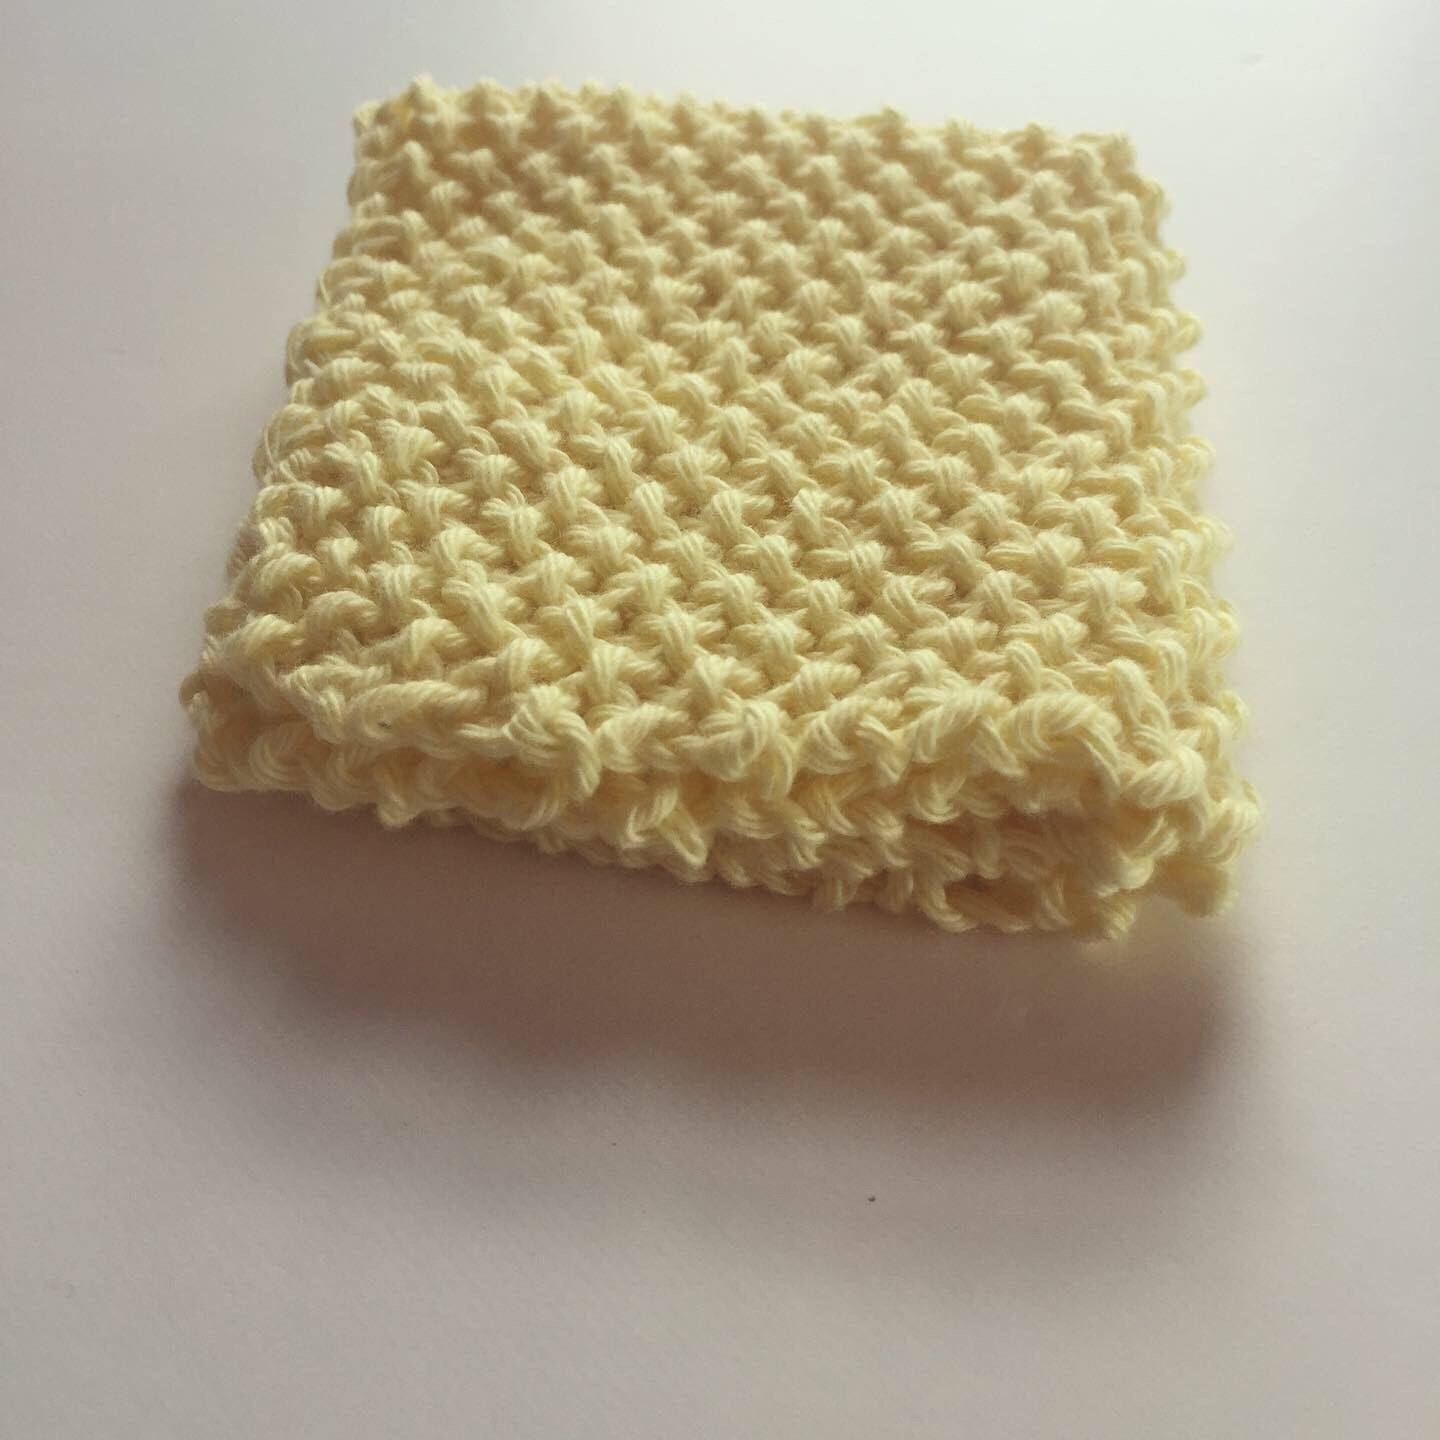 Dishcloth or Face Washer